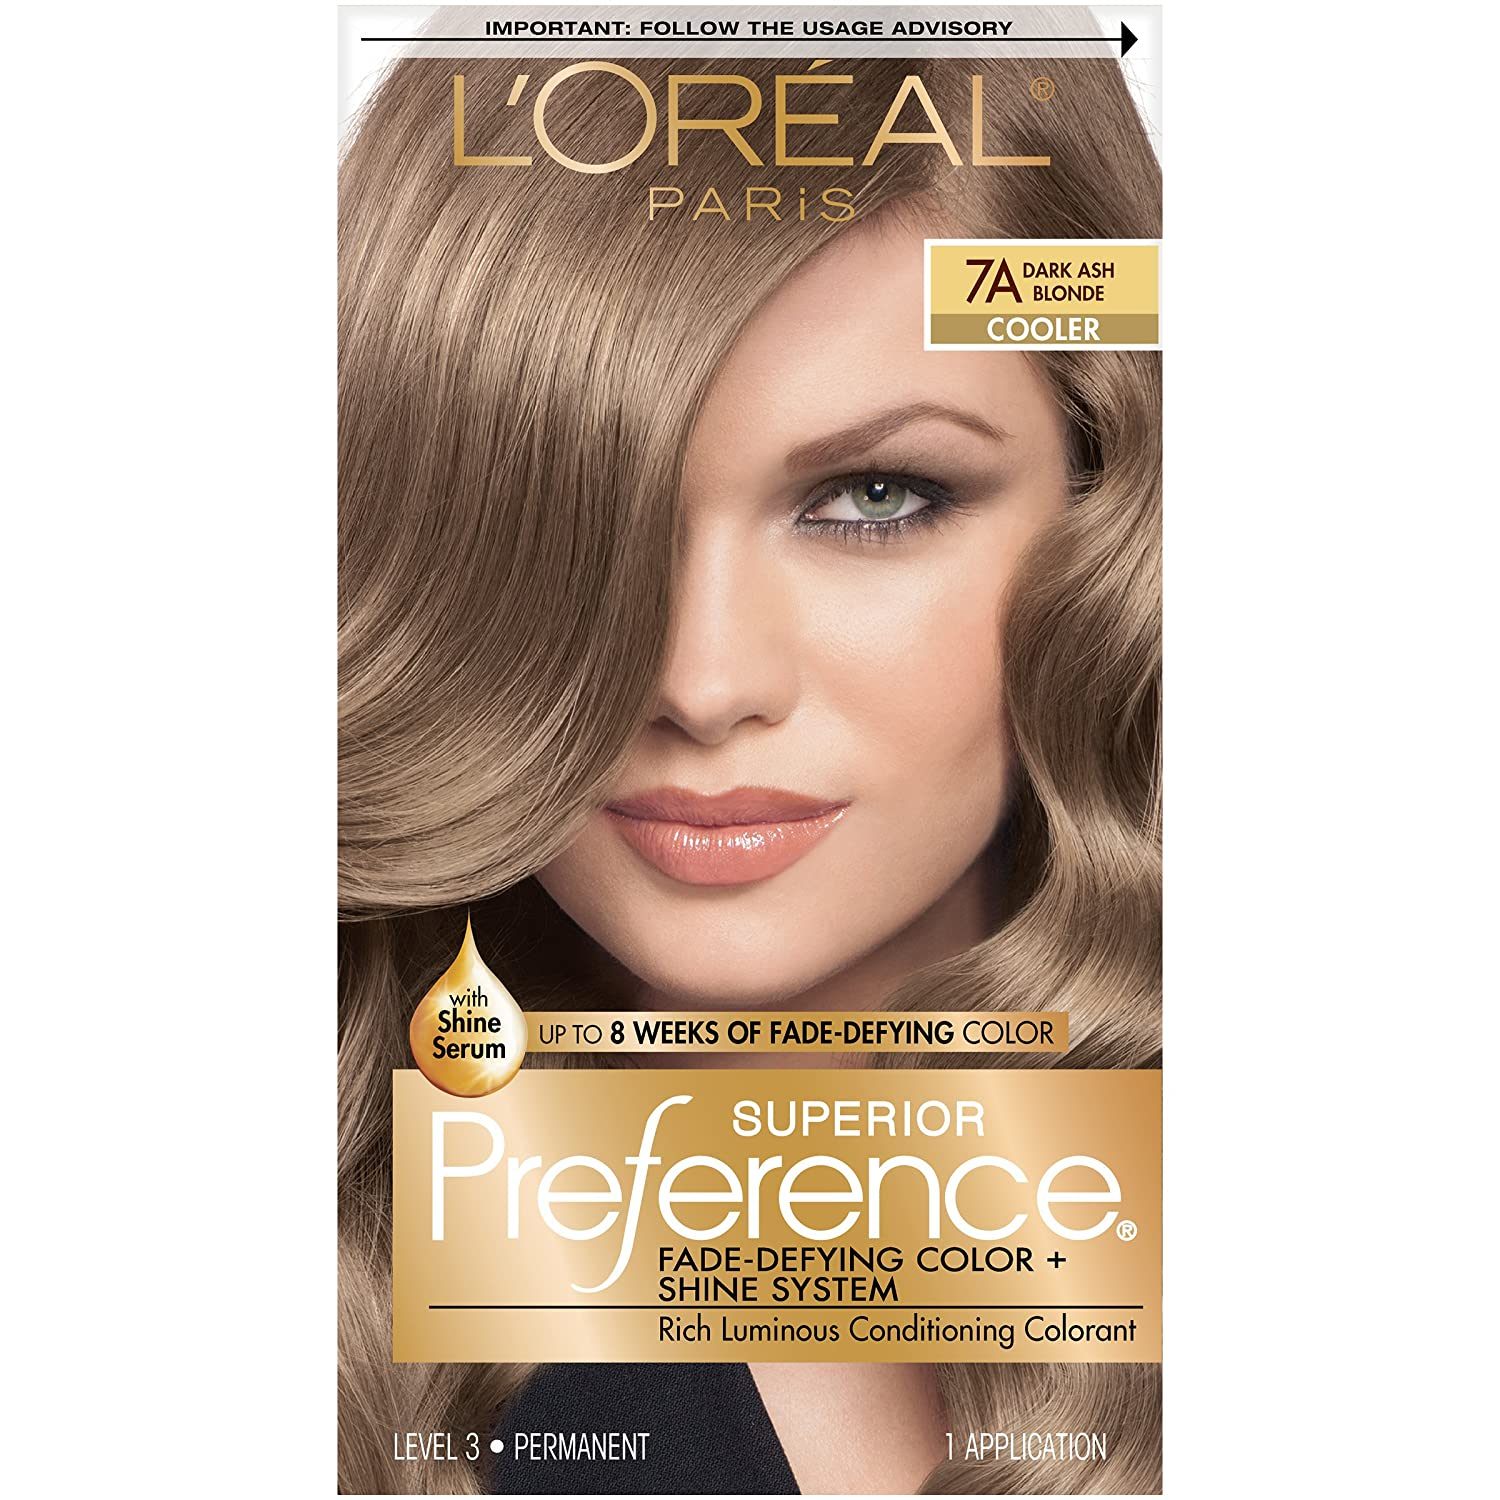 L'Oreal Paris Preference Fade Defying Shine Permanent Hair Color, 155A Dark  Ash Blonde, 15 Count, 150 g